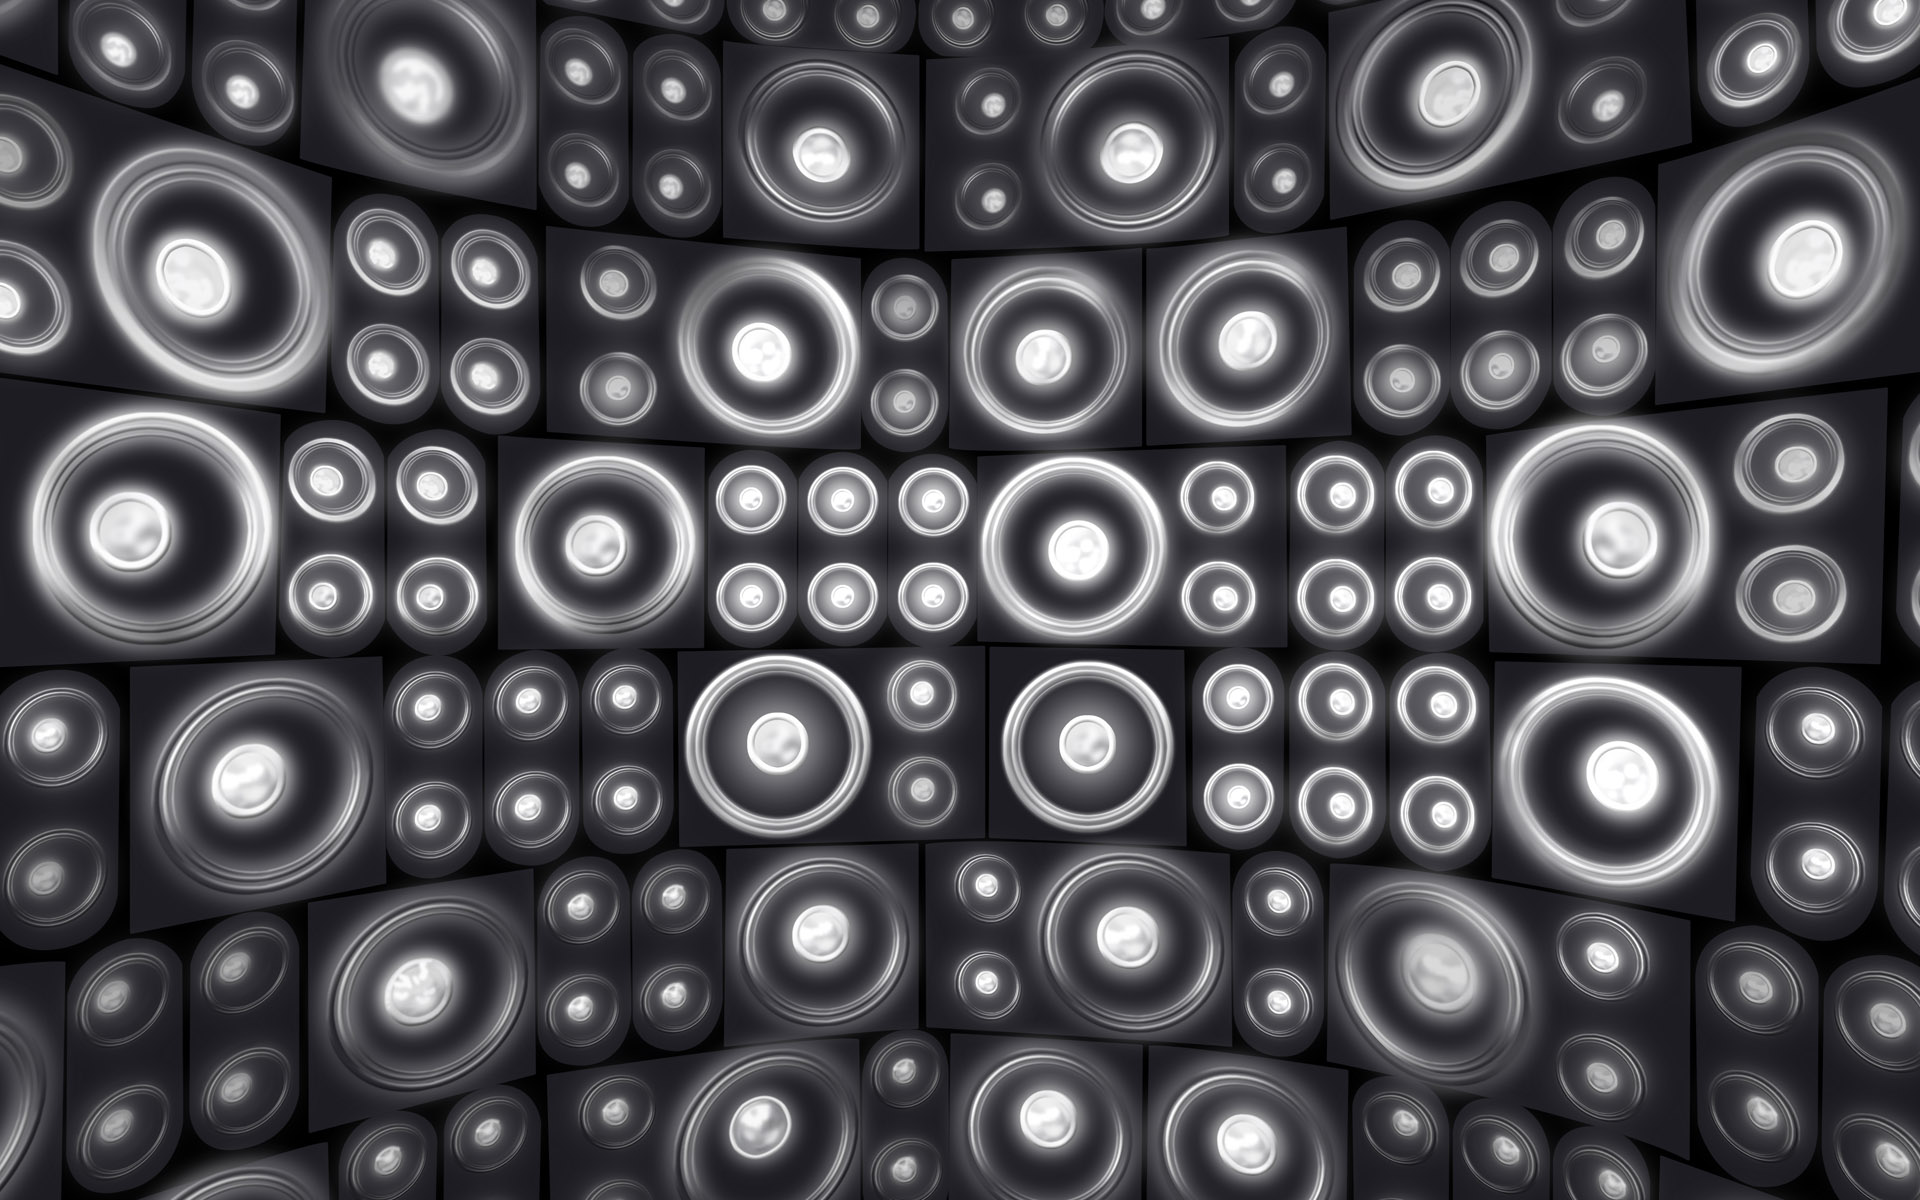 1920x1200 Audio Wall